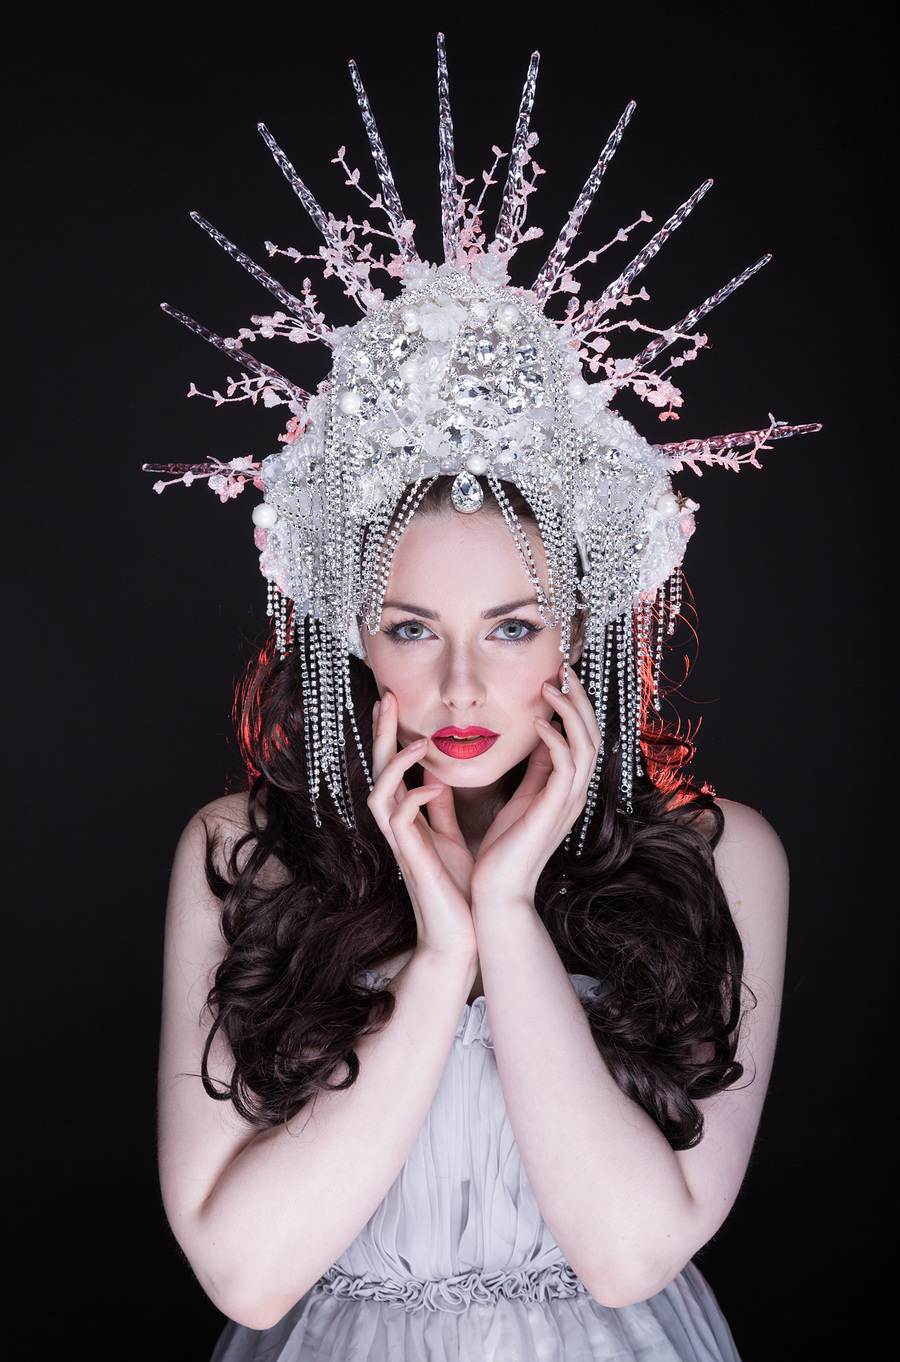 Ice Queen / Photography by Brian Brogan, Taken at Brian Brogan / Uploaded 20th November 2017 @ 02:23 PM